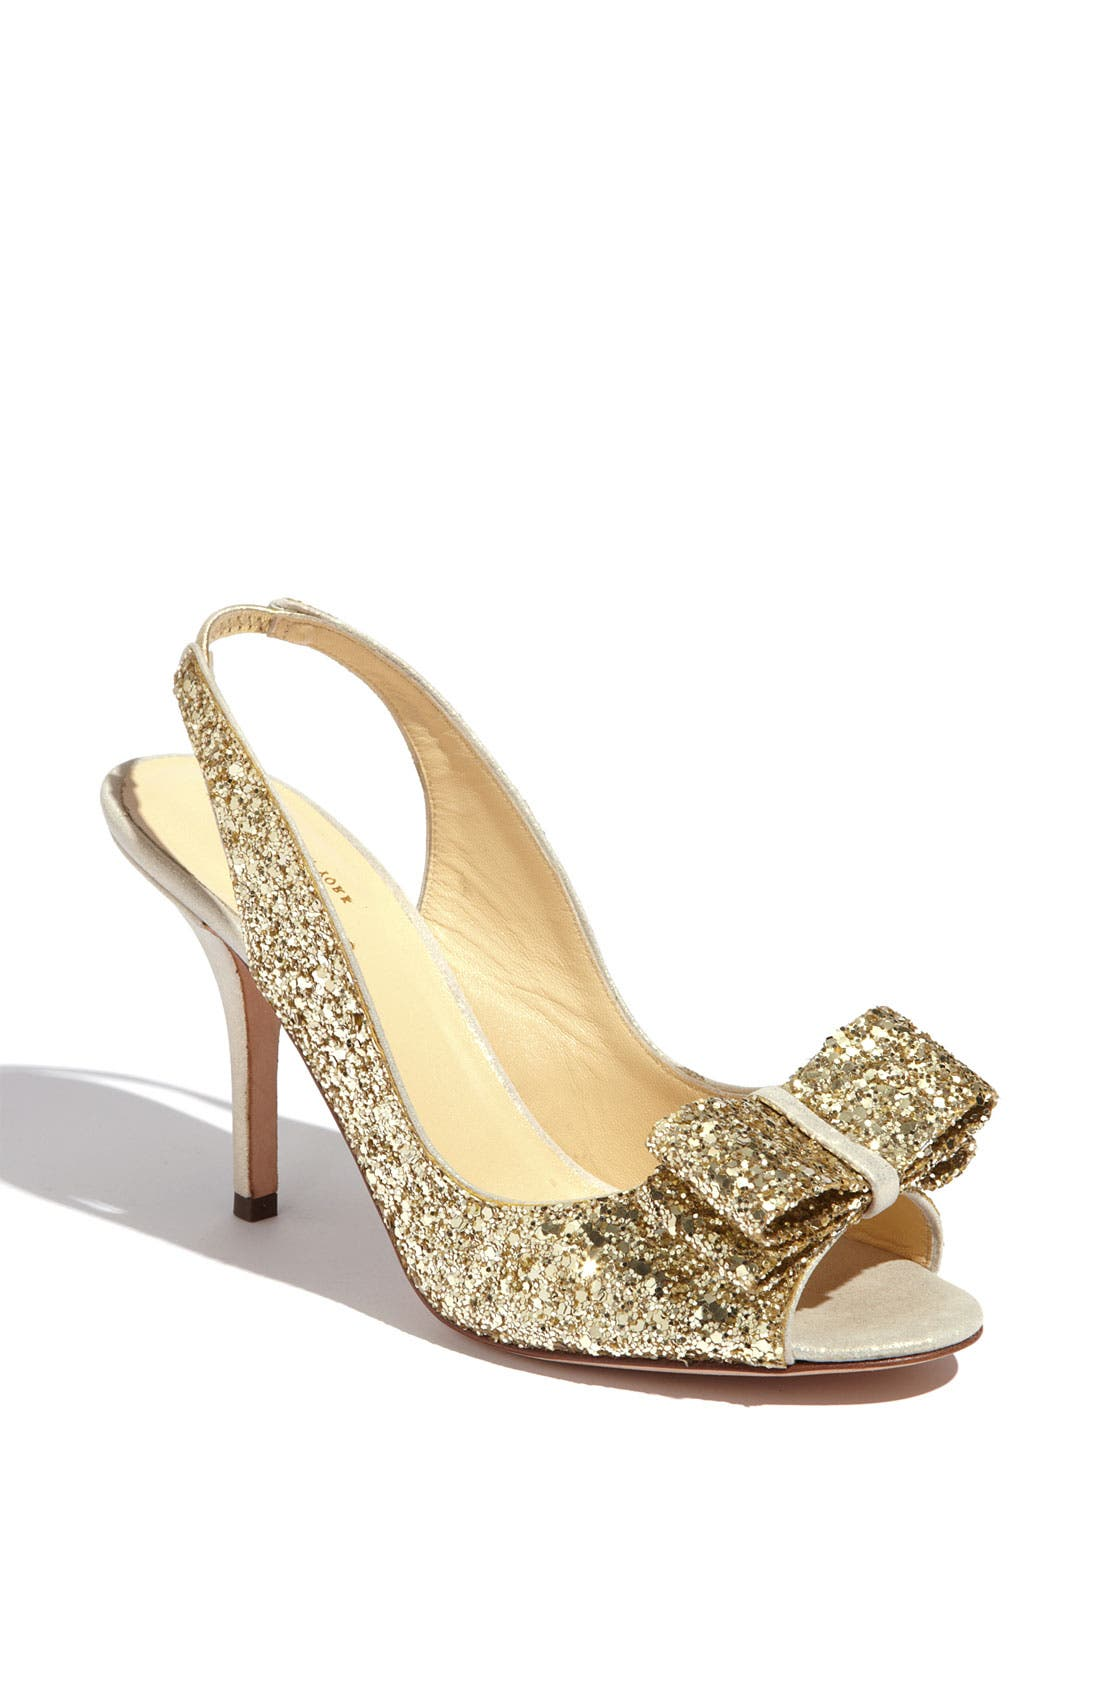 Main Image - kate spade new york 'charm' slingback pump